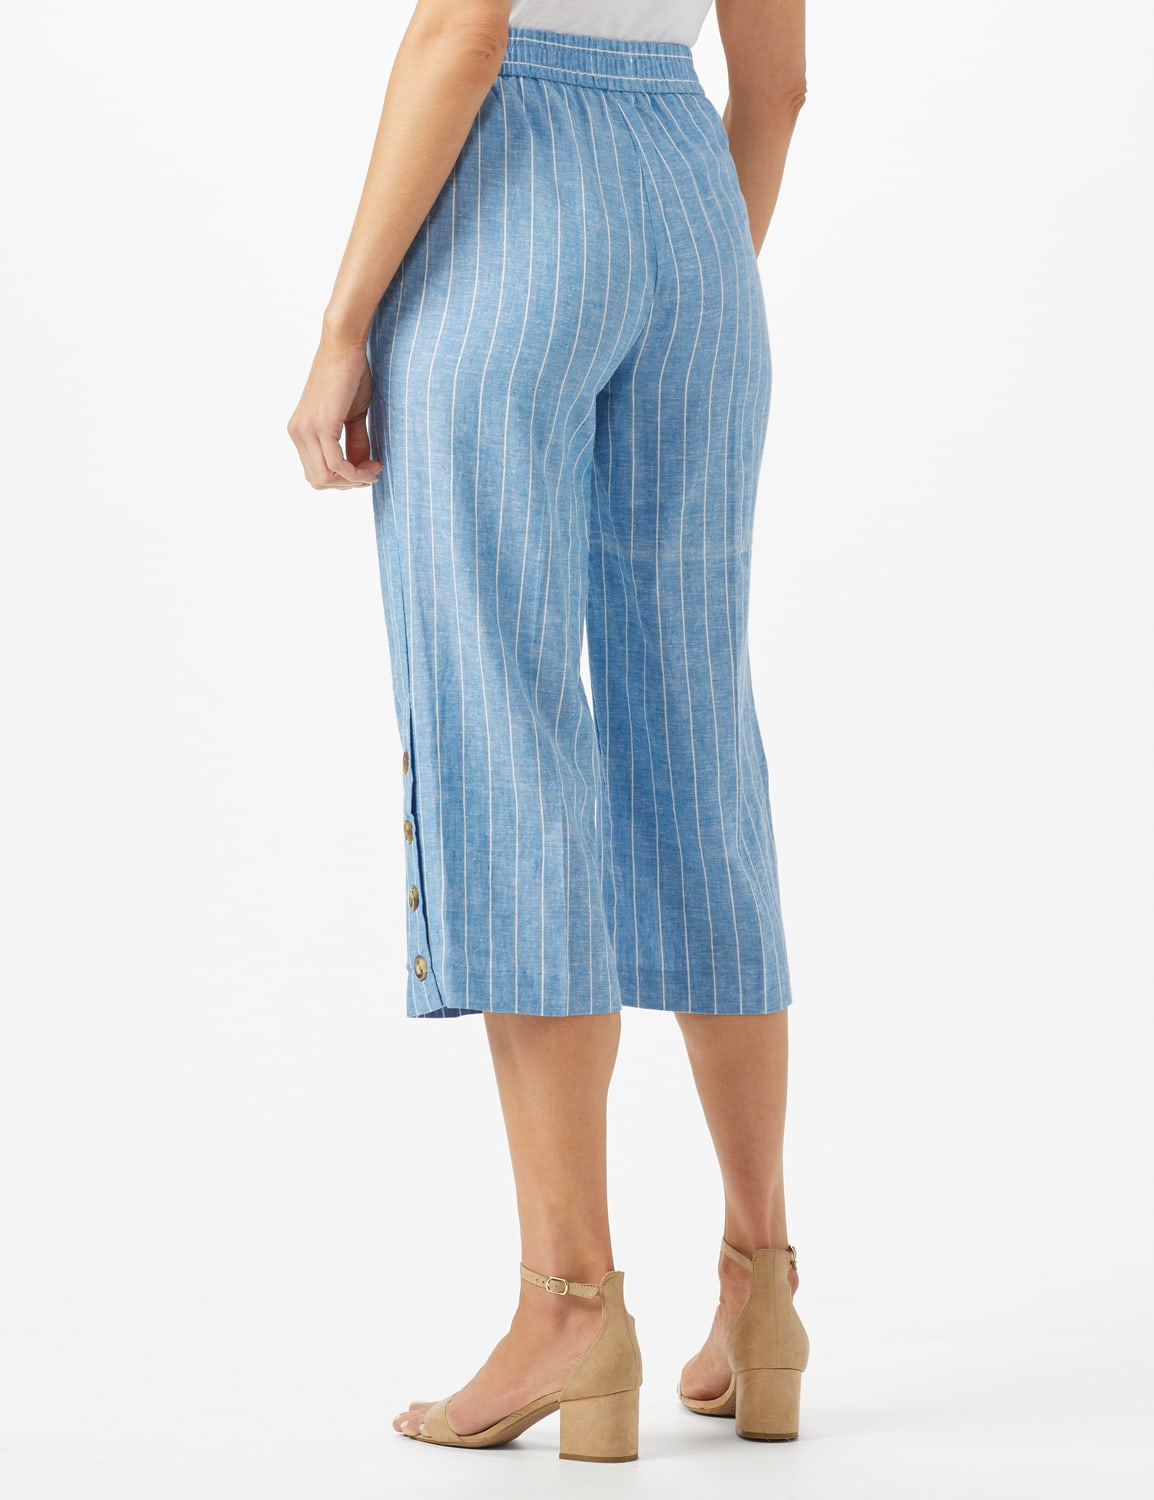 Striped Elastic Waist Crop With Button Detail on Leg - Blue/White - Back